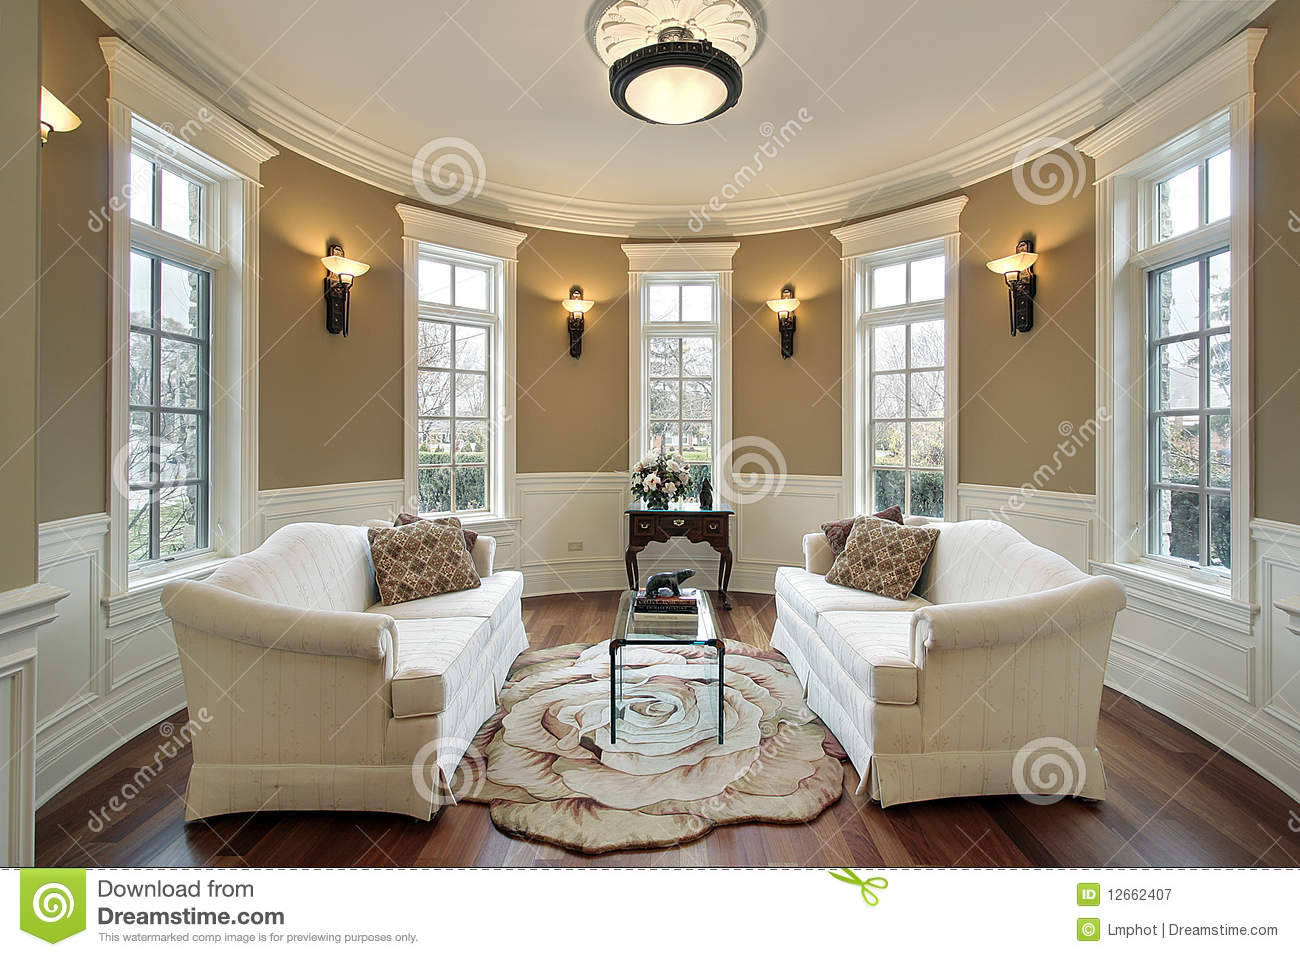 Living Room With Lighting Scones Royalty Free Stock Photography ... - Living Room Lighting